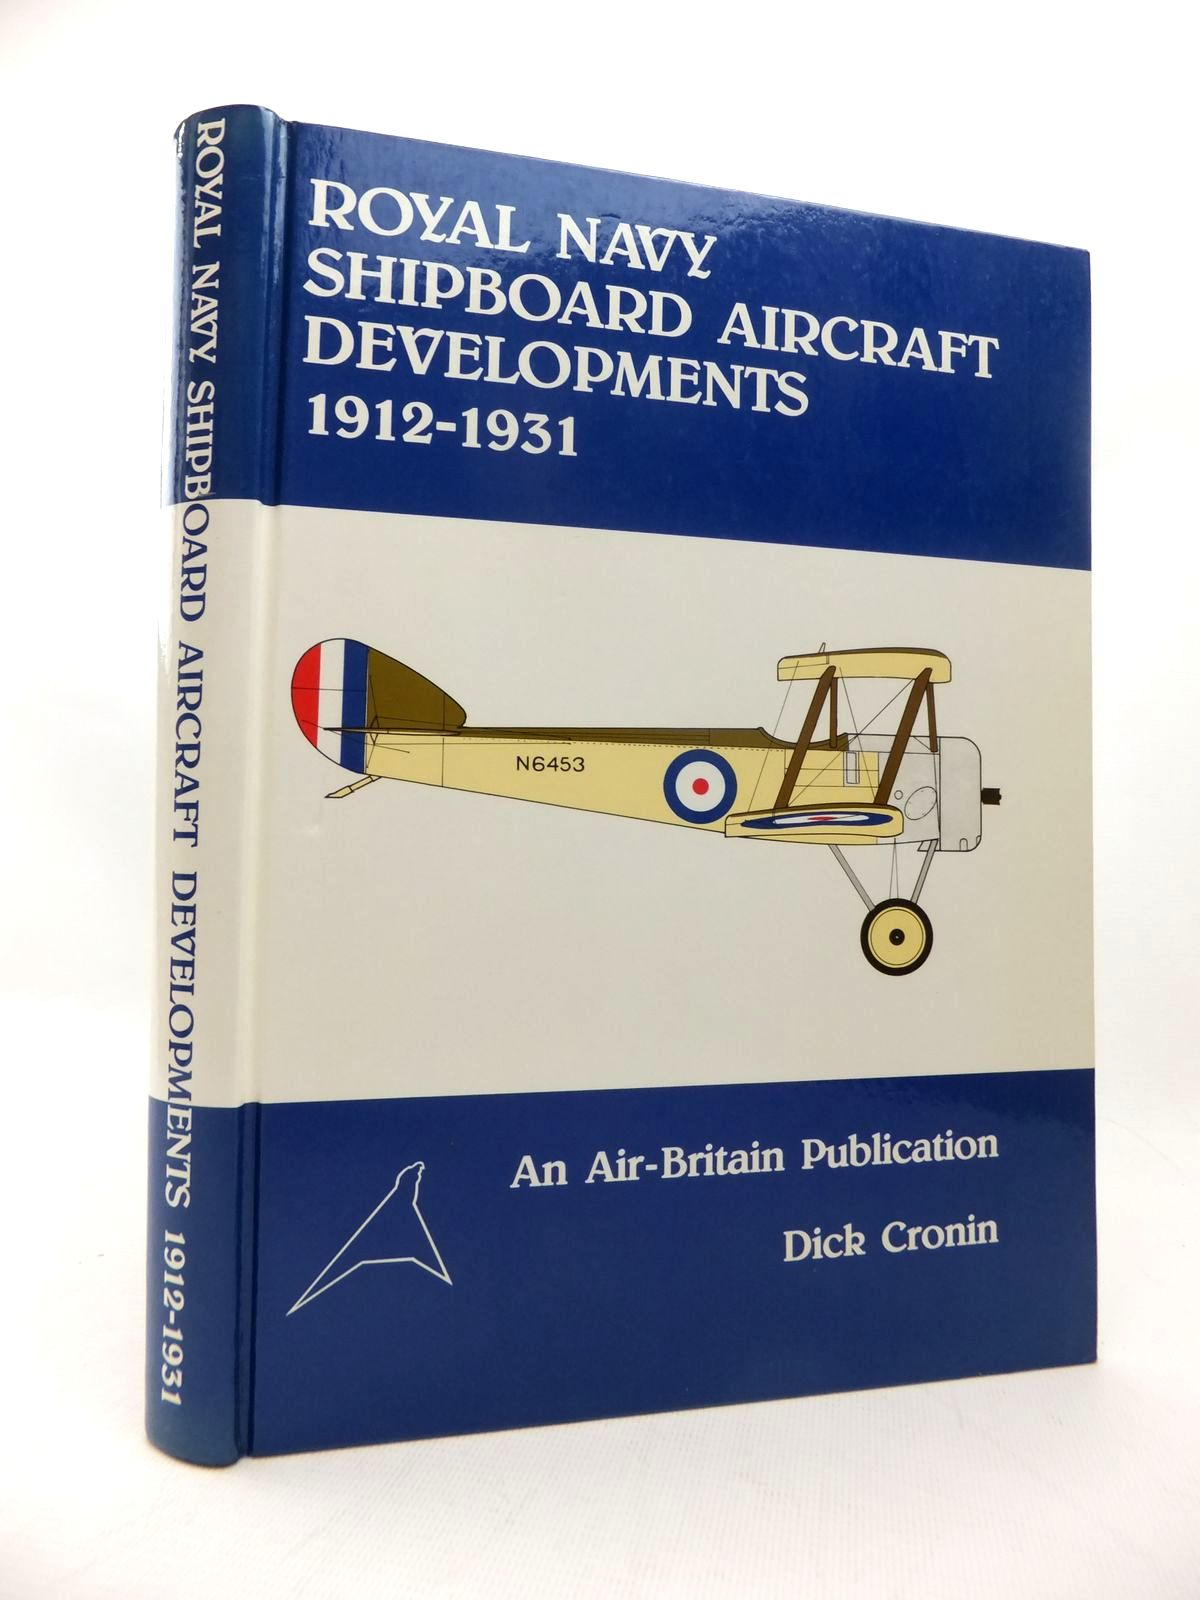 Photo of ROYAL NAVY SHIPBOARD AIRCRAFT DEVELOPMENTS 1912-1931 written by Cronin, Dick published by Air-Britain (historians) Ltd. (STOCK CODE: 1814196)  for sale by Stella & Rose's Books